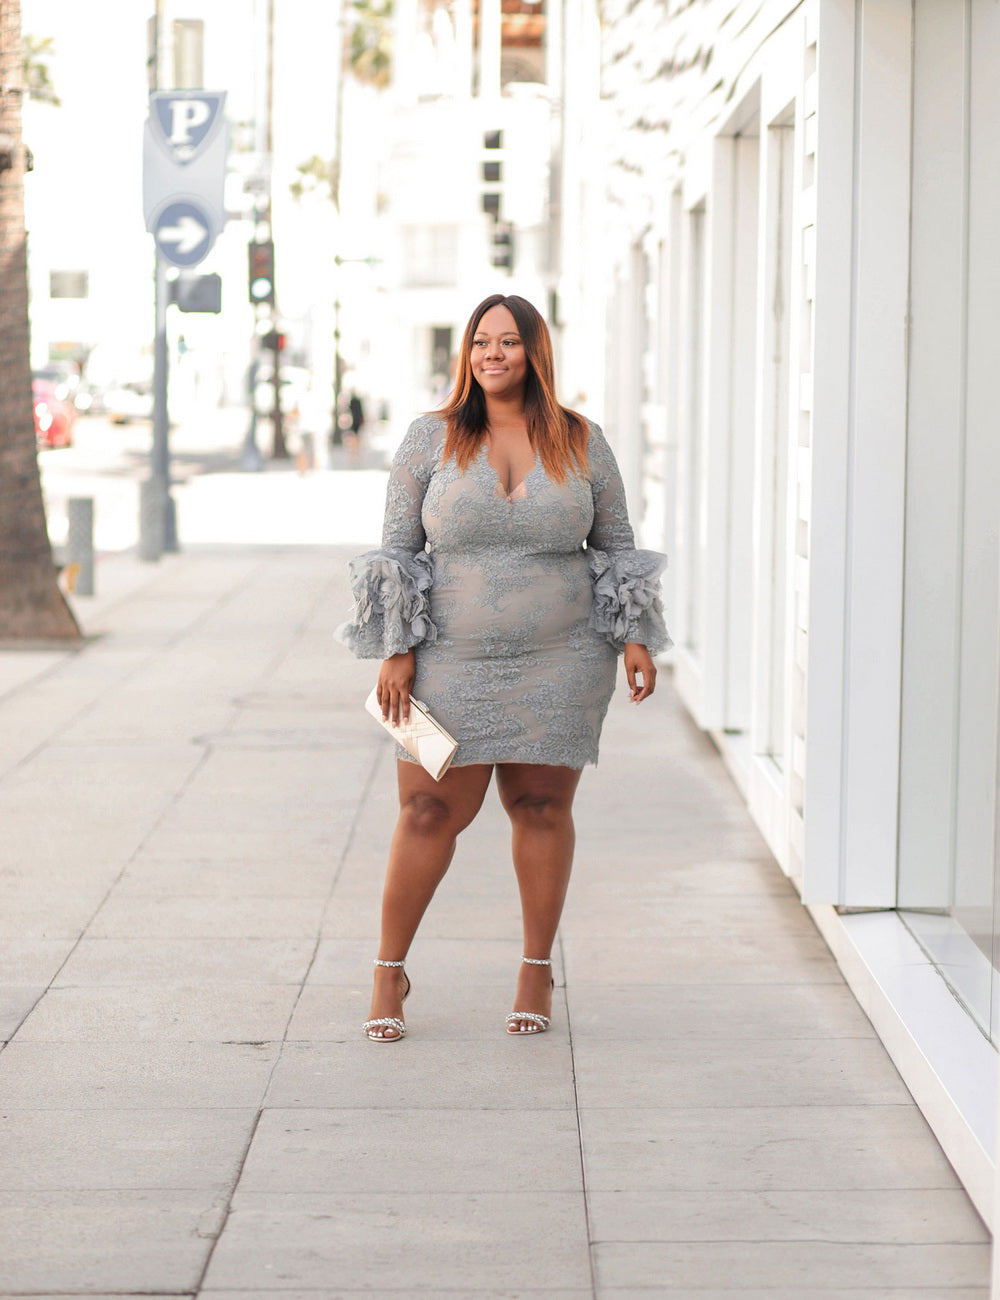 Every Plus Size Woman Should Enjoy Her Own Life-4